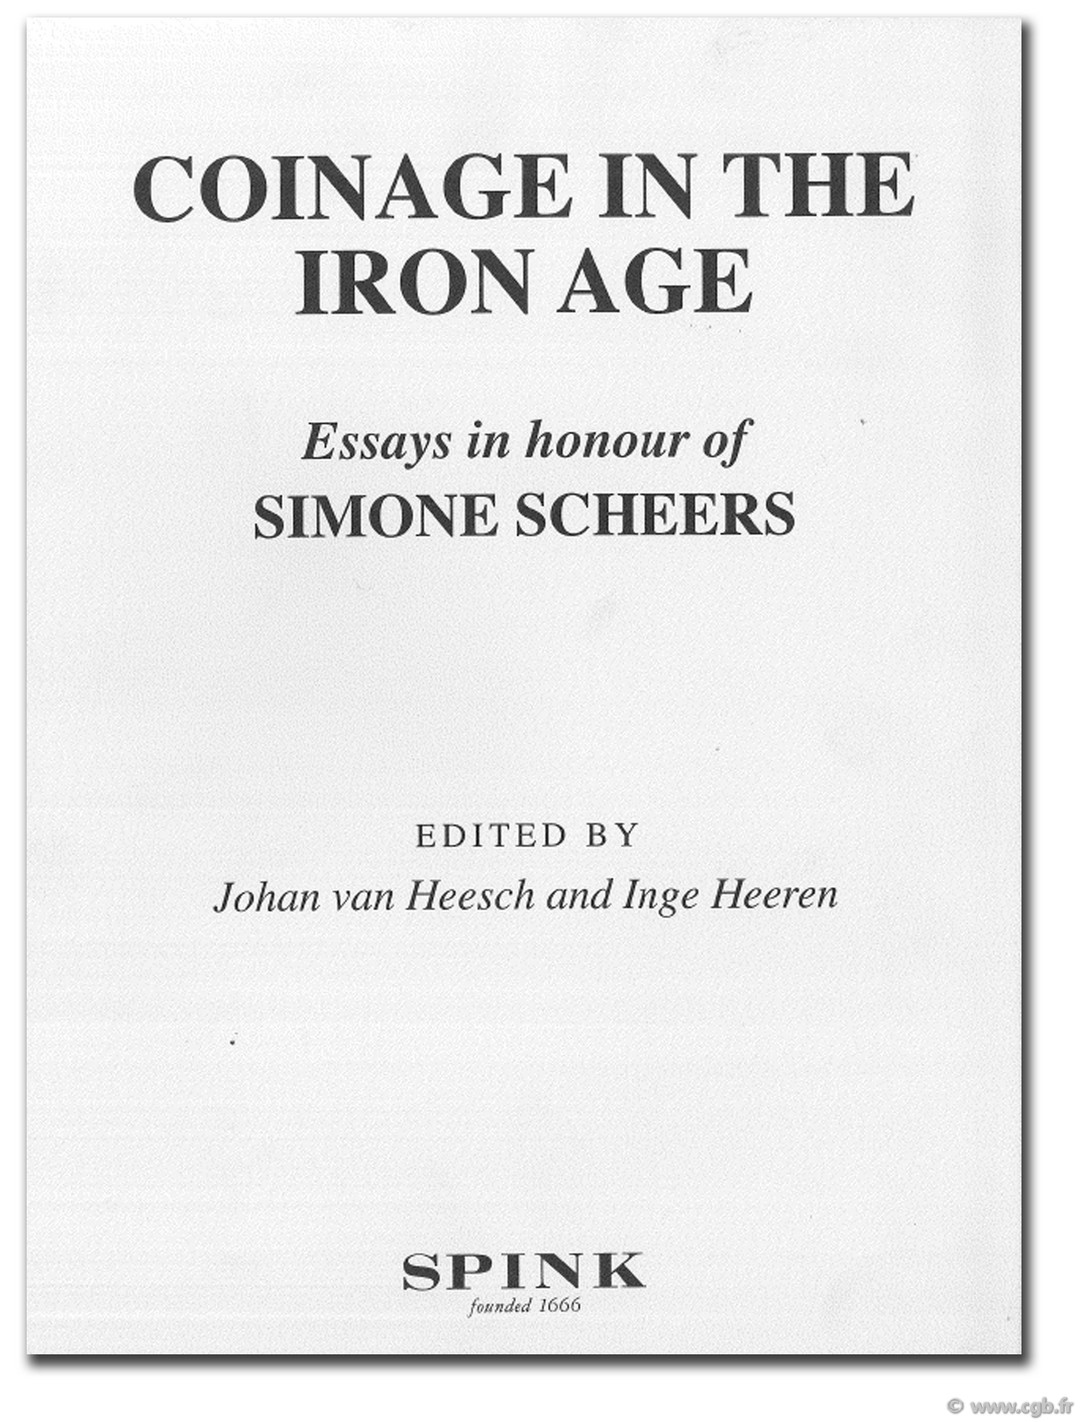 Coinage in the iron age, essays in honour of Simone Scheers Collectif